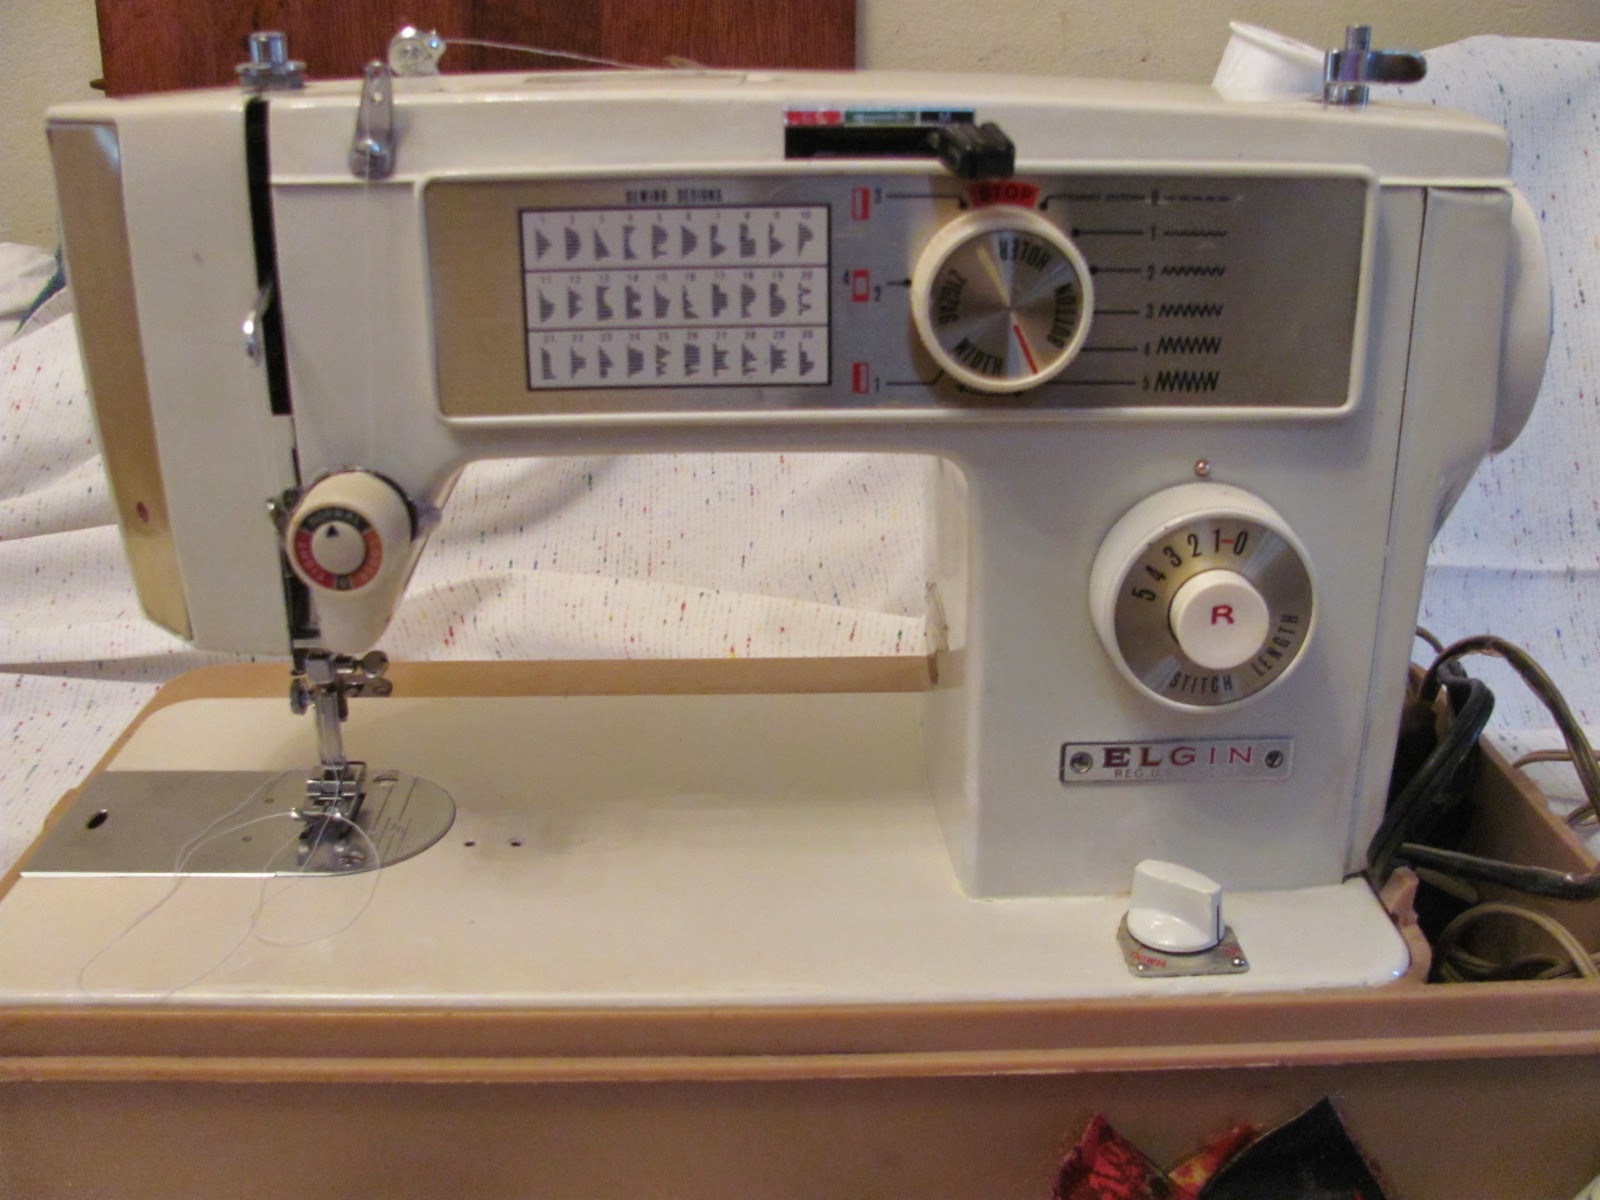 next Array - my sewing machine projects elgin s 1145 sewing machine  national rh mysewingmachineprojects blogspot com